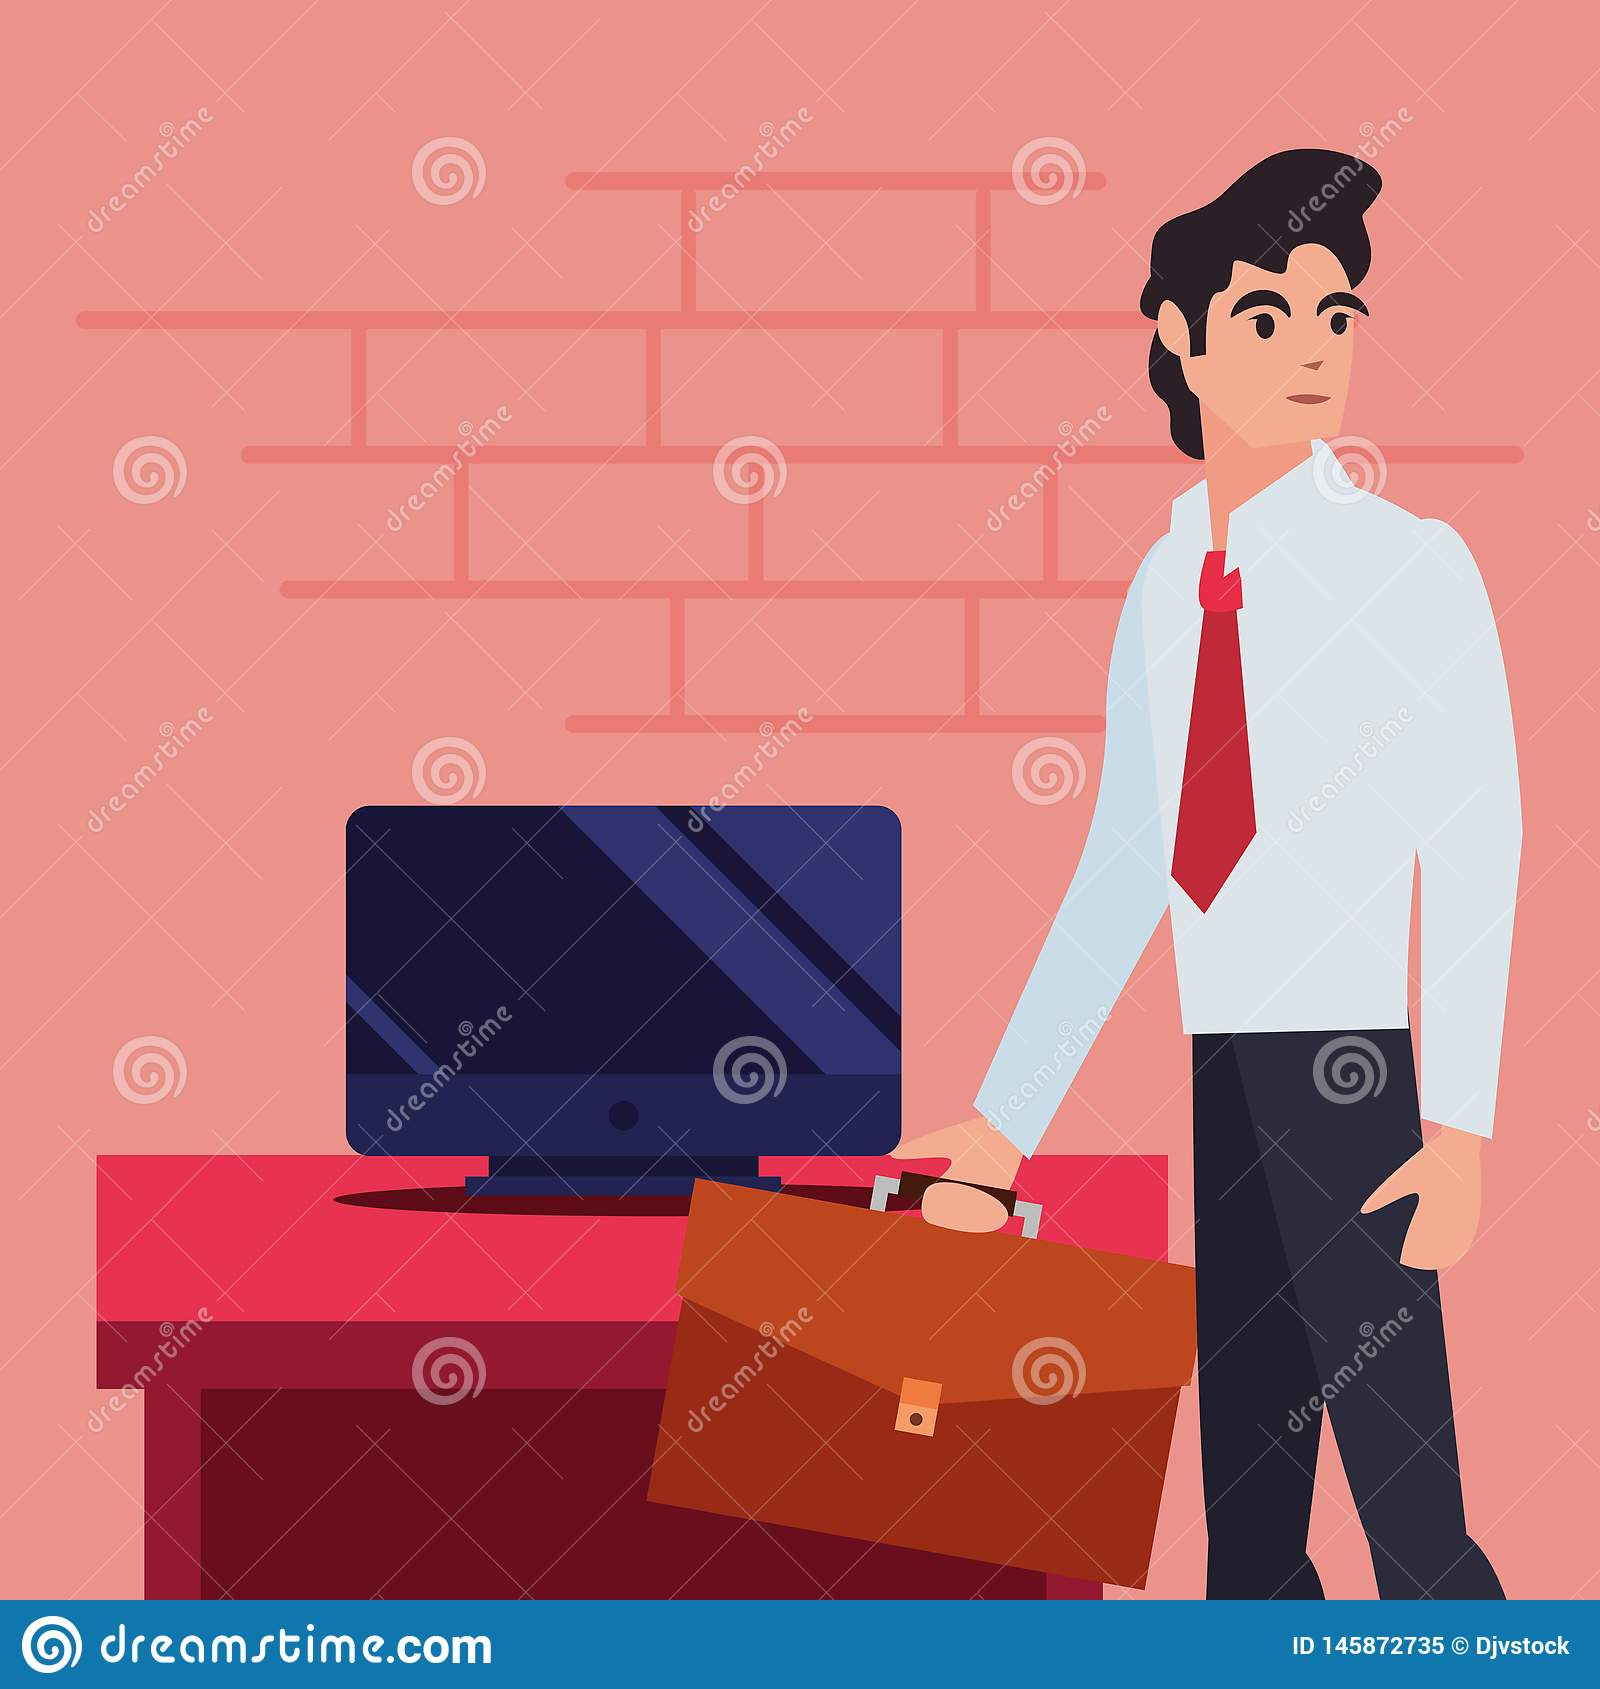 People labour day. Businessman profession computer labour day vector illustration design royalty free stock photo